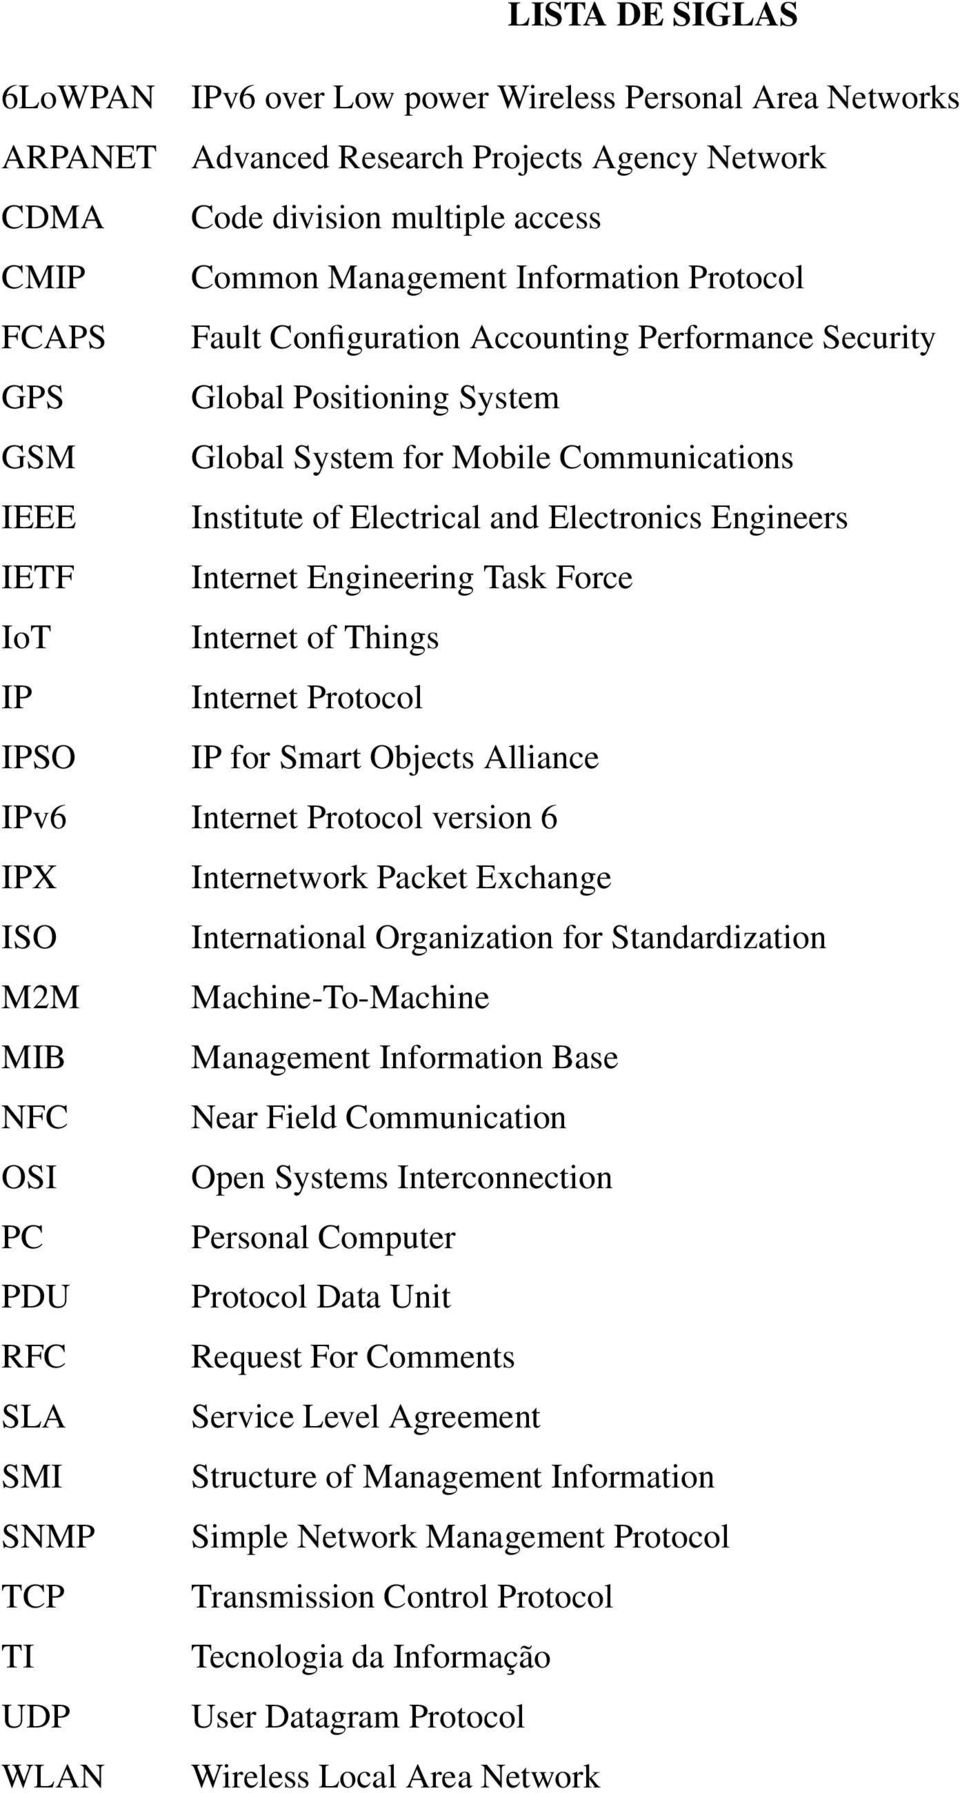 IETF Internet Engineering Task Force IoT Internet of Things IP Internet Protocol IPSO IP for Smart Objects Alliance IPv6 Internet Protocol version 6 IPX Internetwork Packet Exchange ISO International